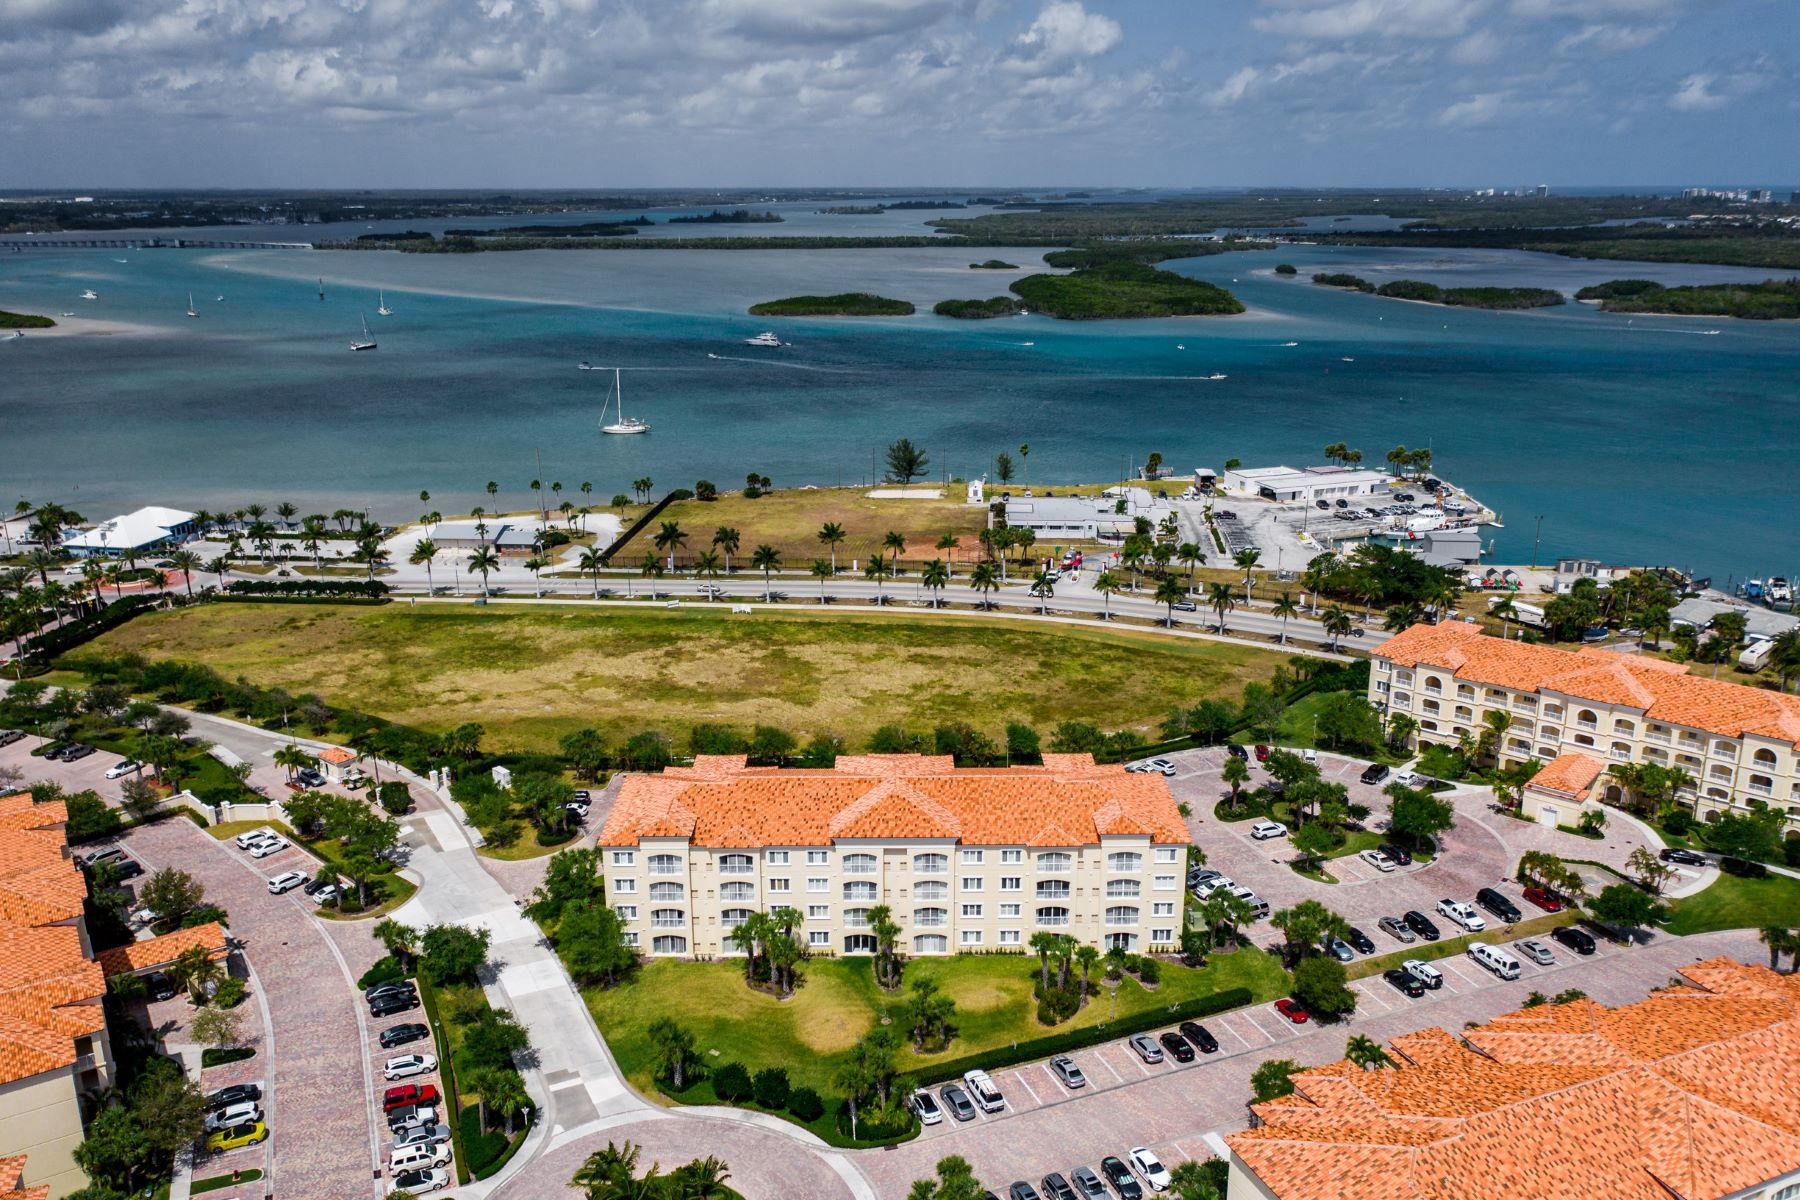 37 Harbour Isle Drive 37 Harbour Isle Drive 203 Fort Pierce, Florida 34949 Vereinigte Staaten